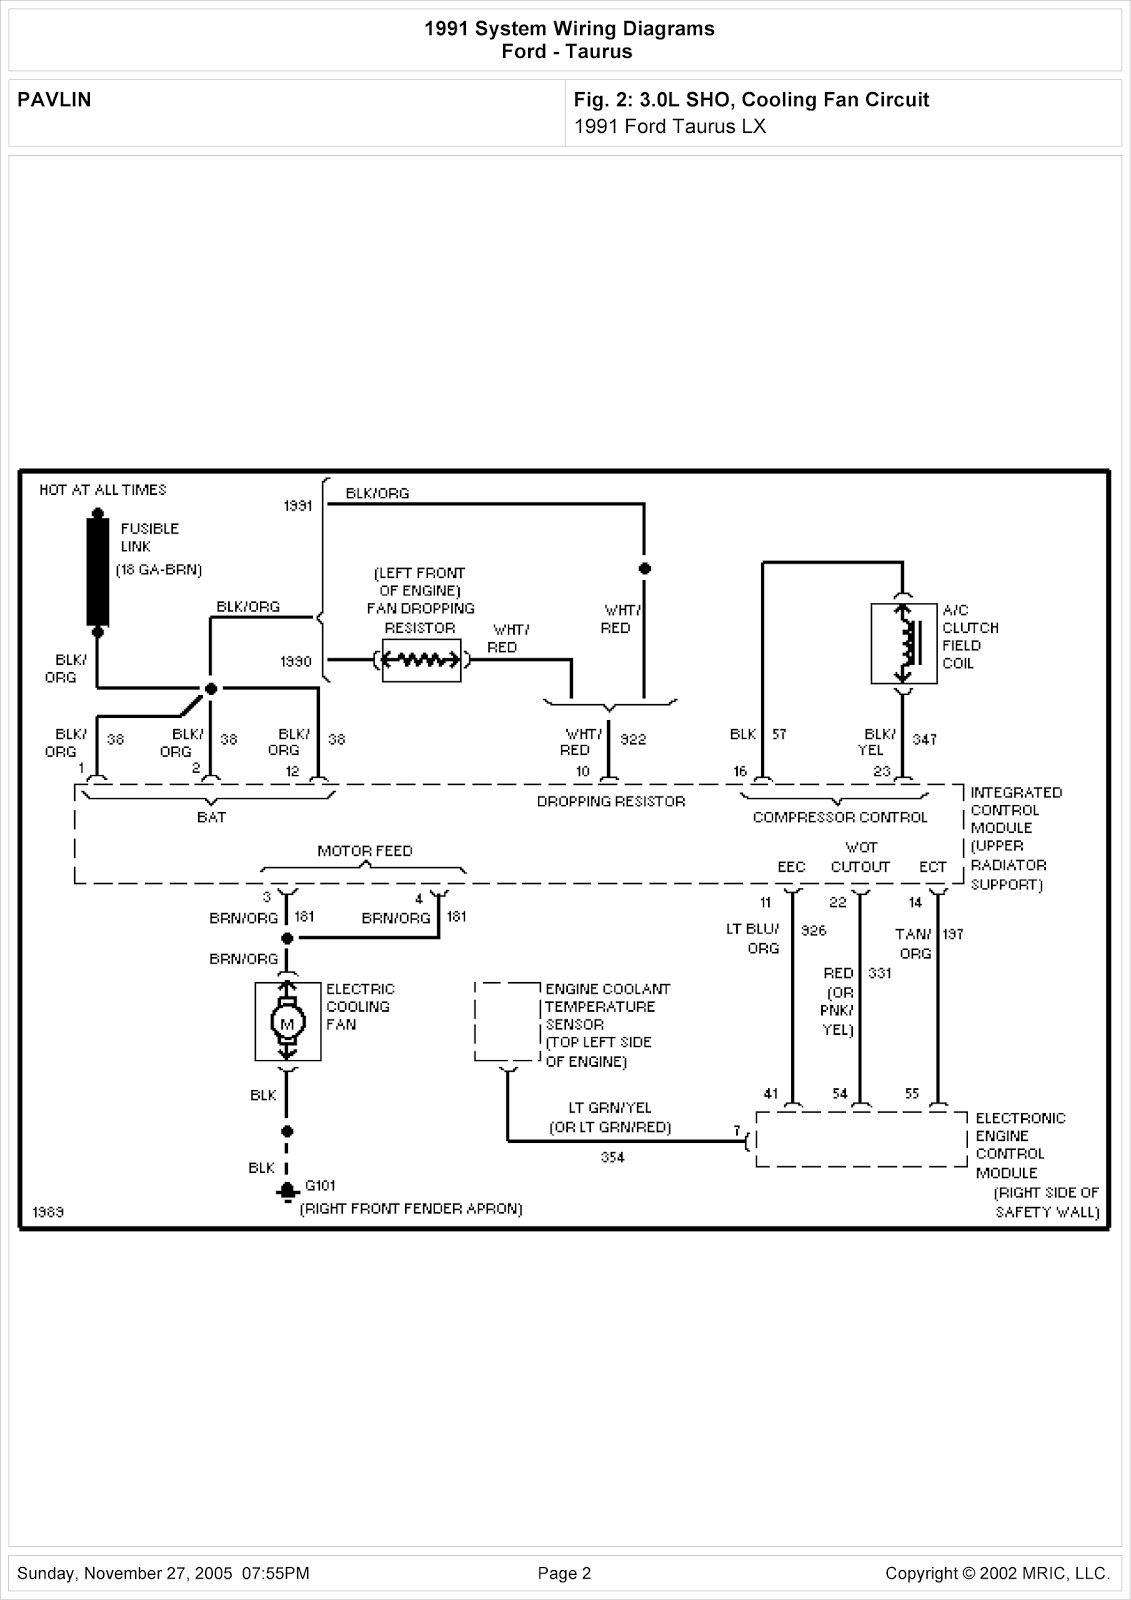 1995 ford taurus engine cooling system diagram wiring 2003 ford 4 0 sohc engine cooling system diagram 1999 ford taurus system wiring diagram cooling fan circuit ...